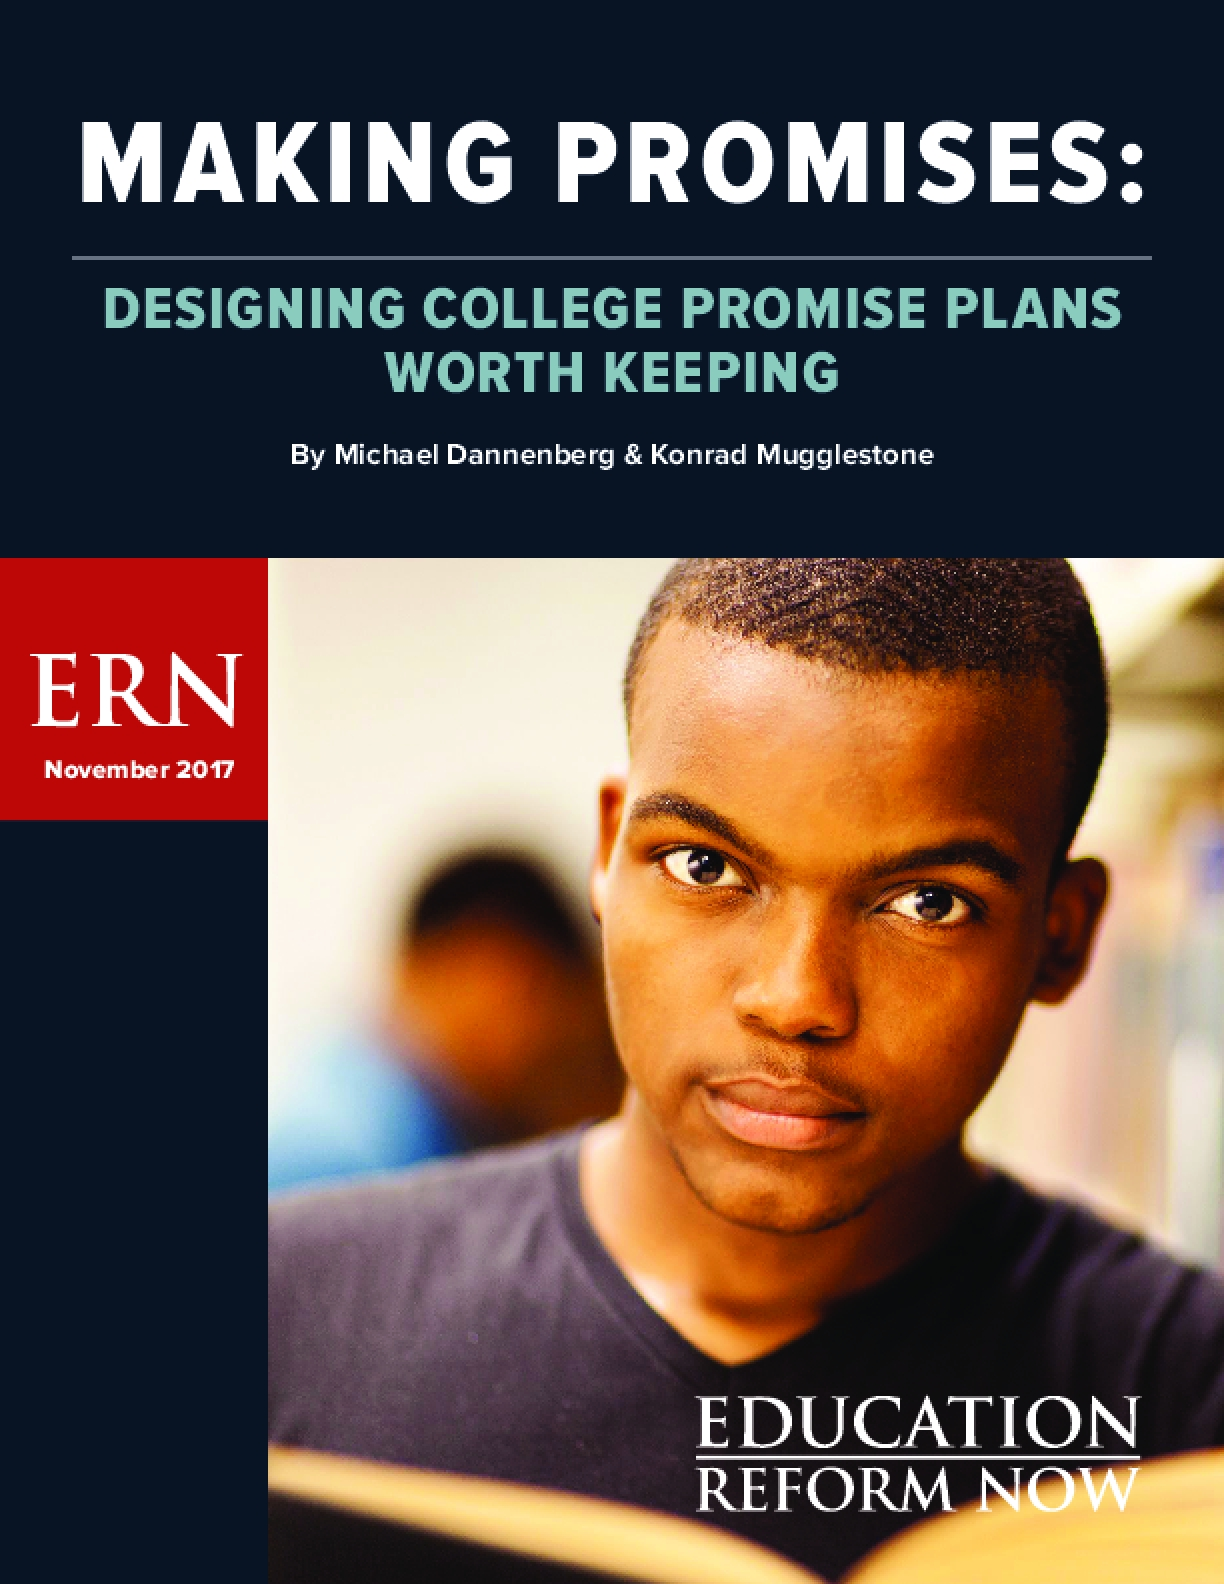 Making Promises: Designing College Promise Plans Worth Keeping